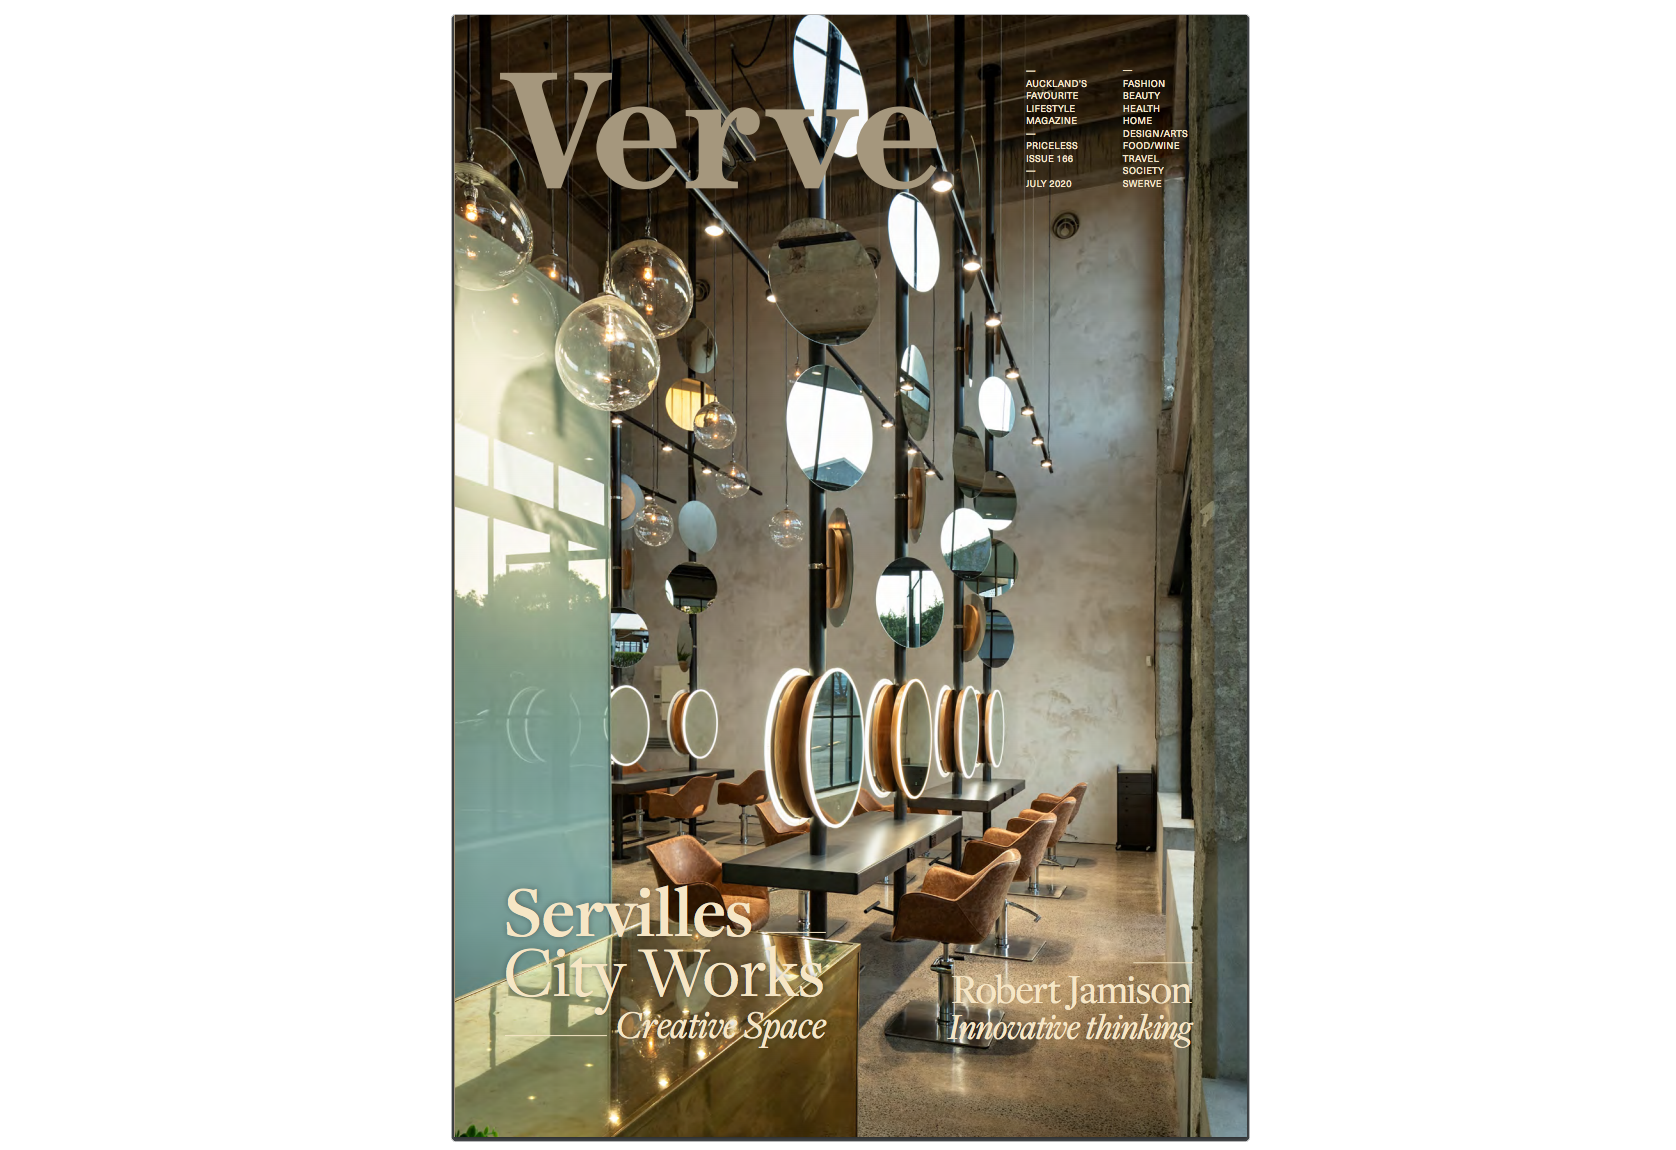 As Featured on Verve Magazine's July Issue - Click here to read